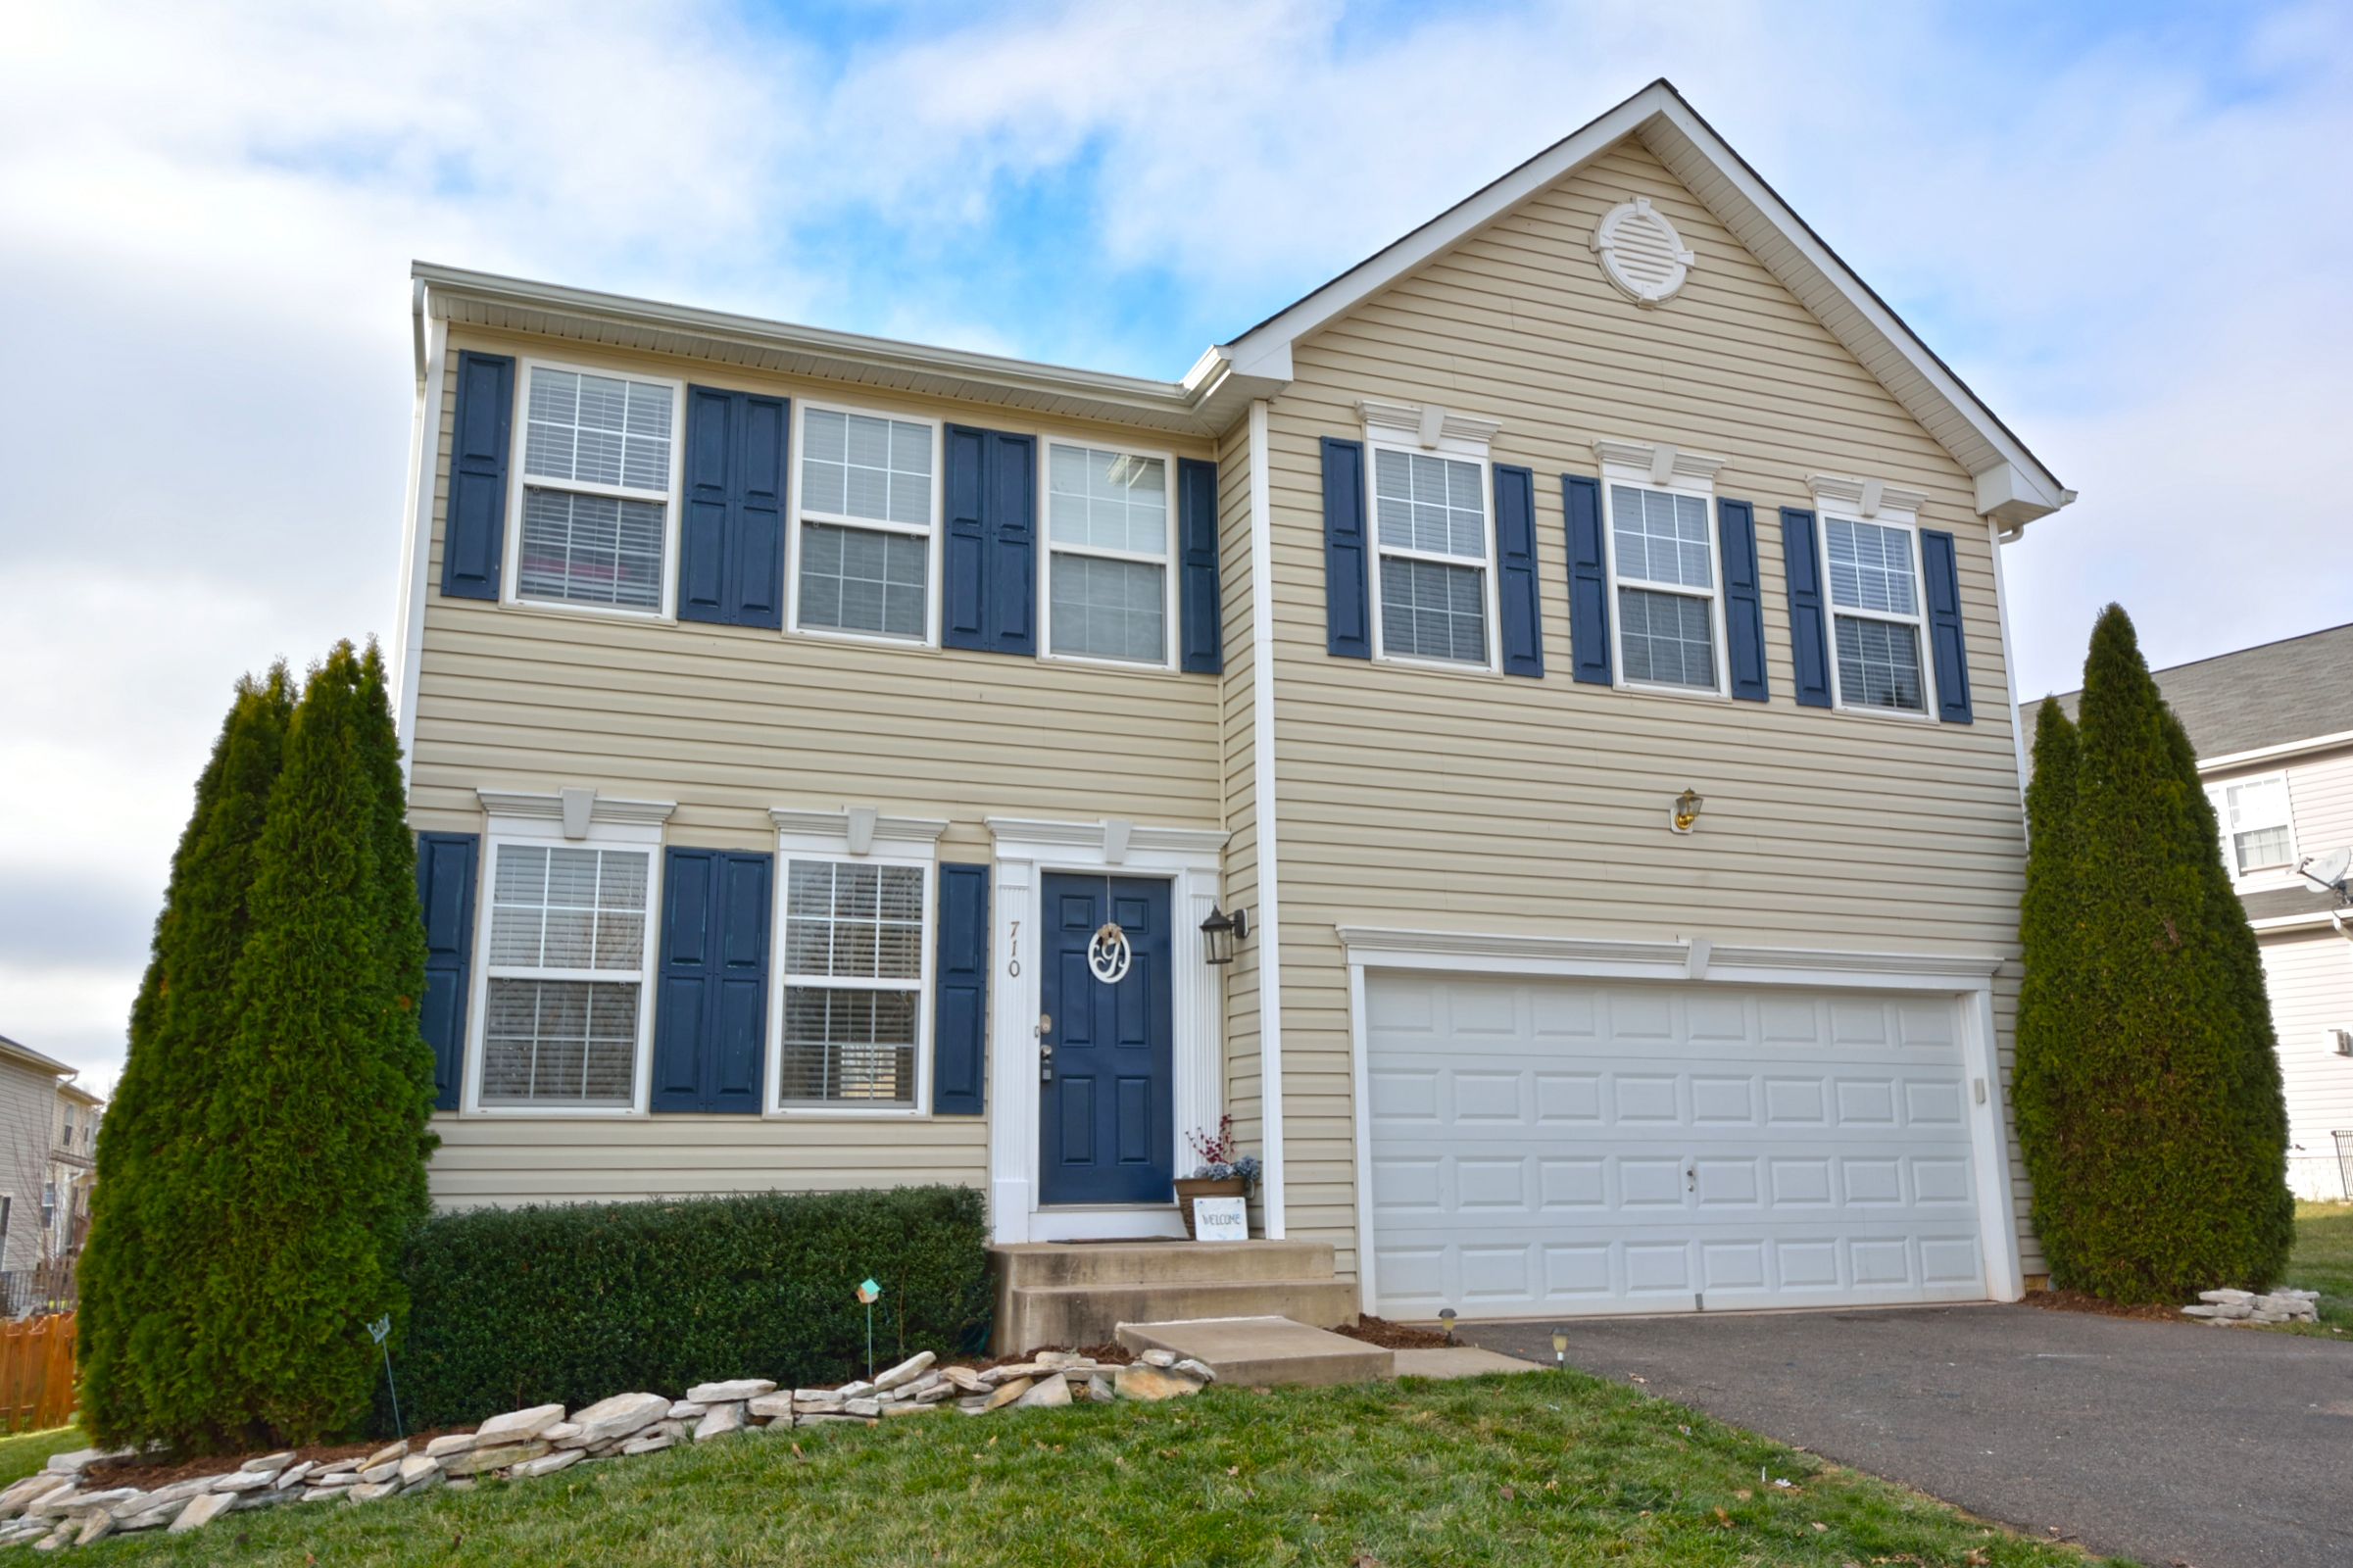 Just Listed! Well-Appointed 4 Bed, 3 Level Culpeper Colonial ~ $260,000